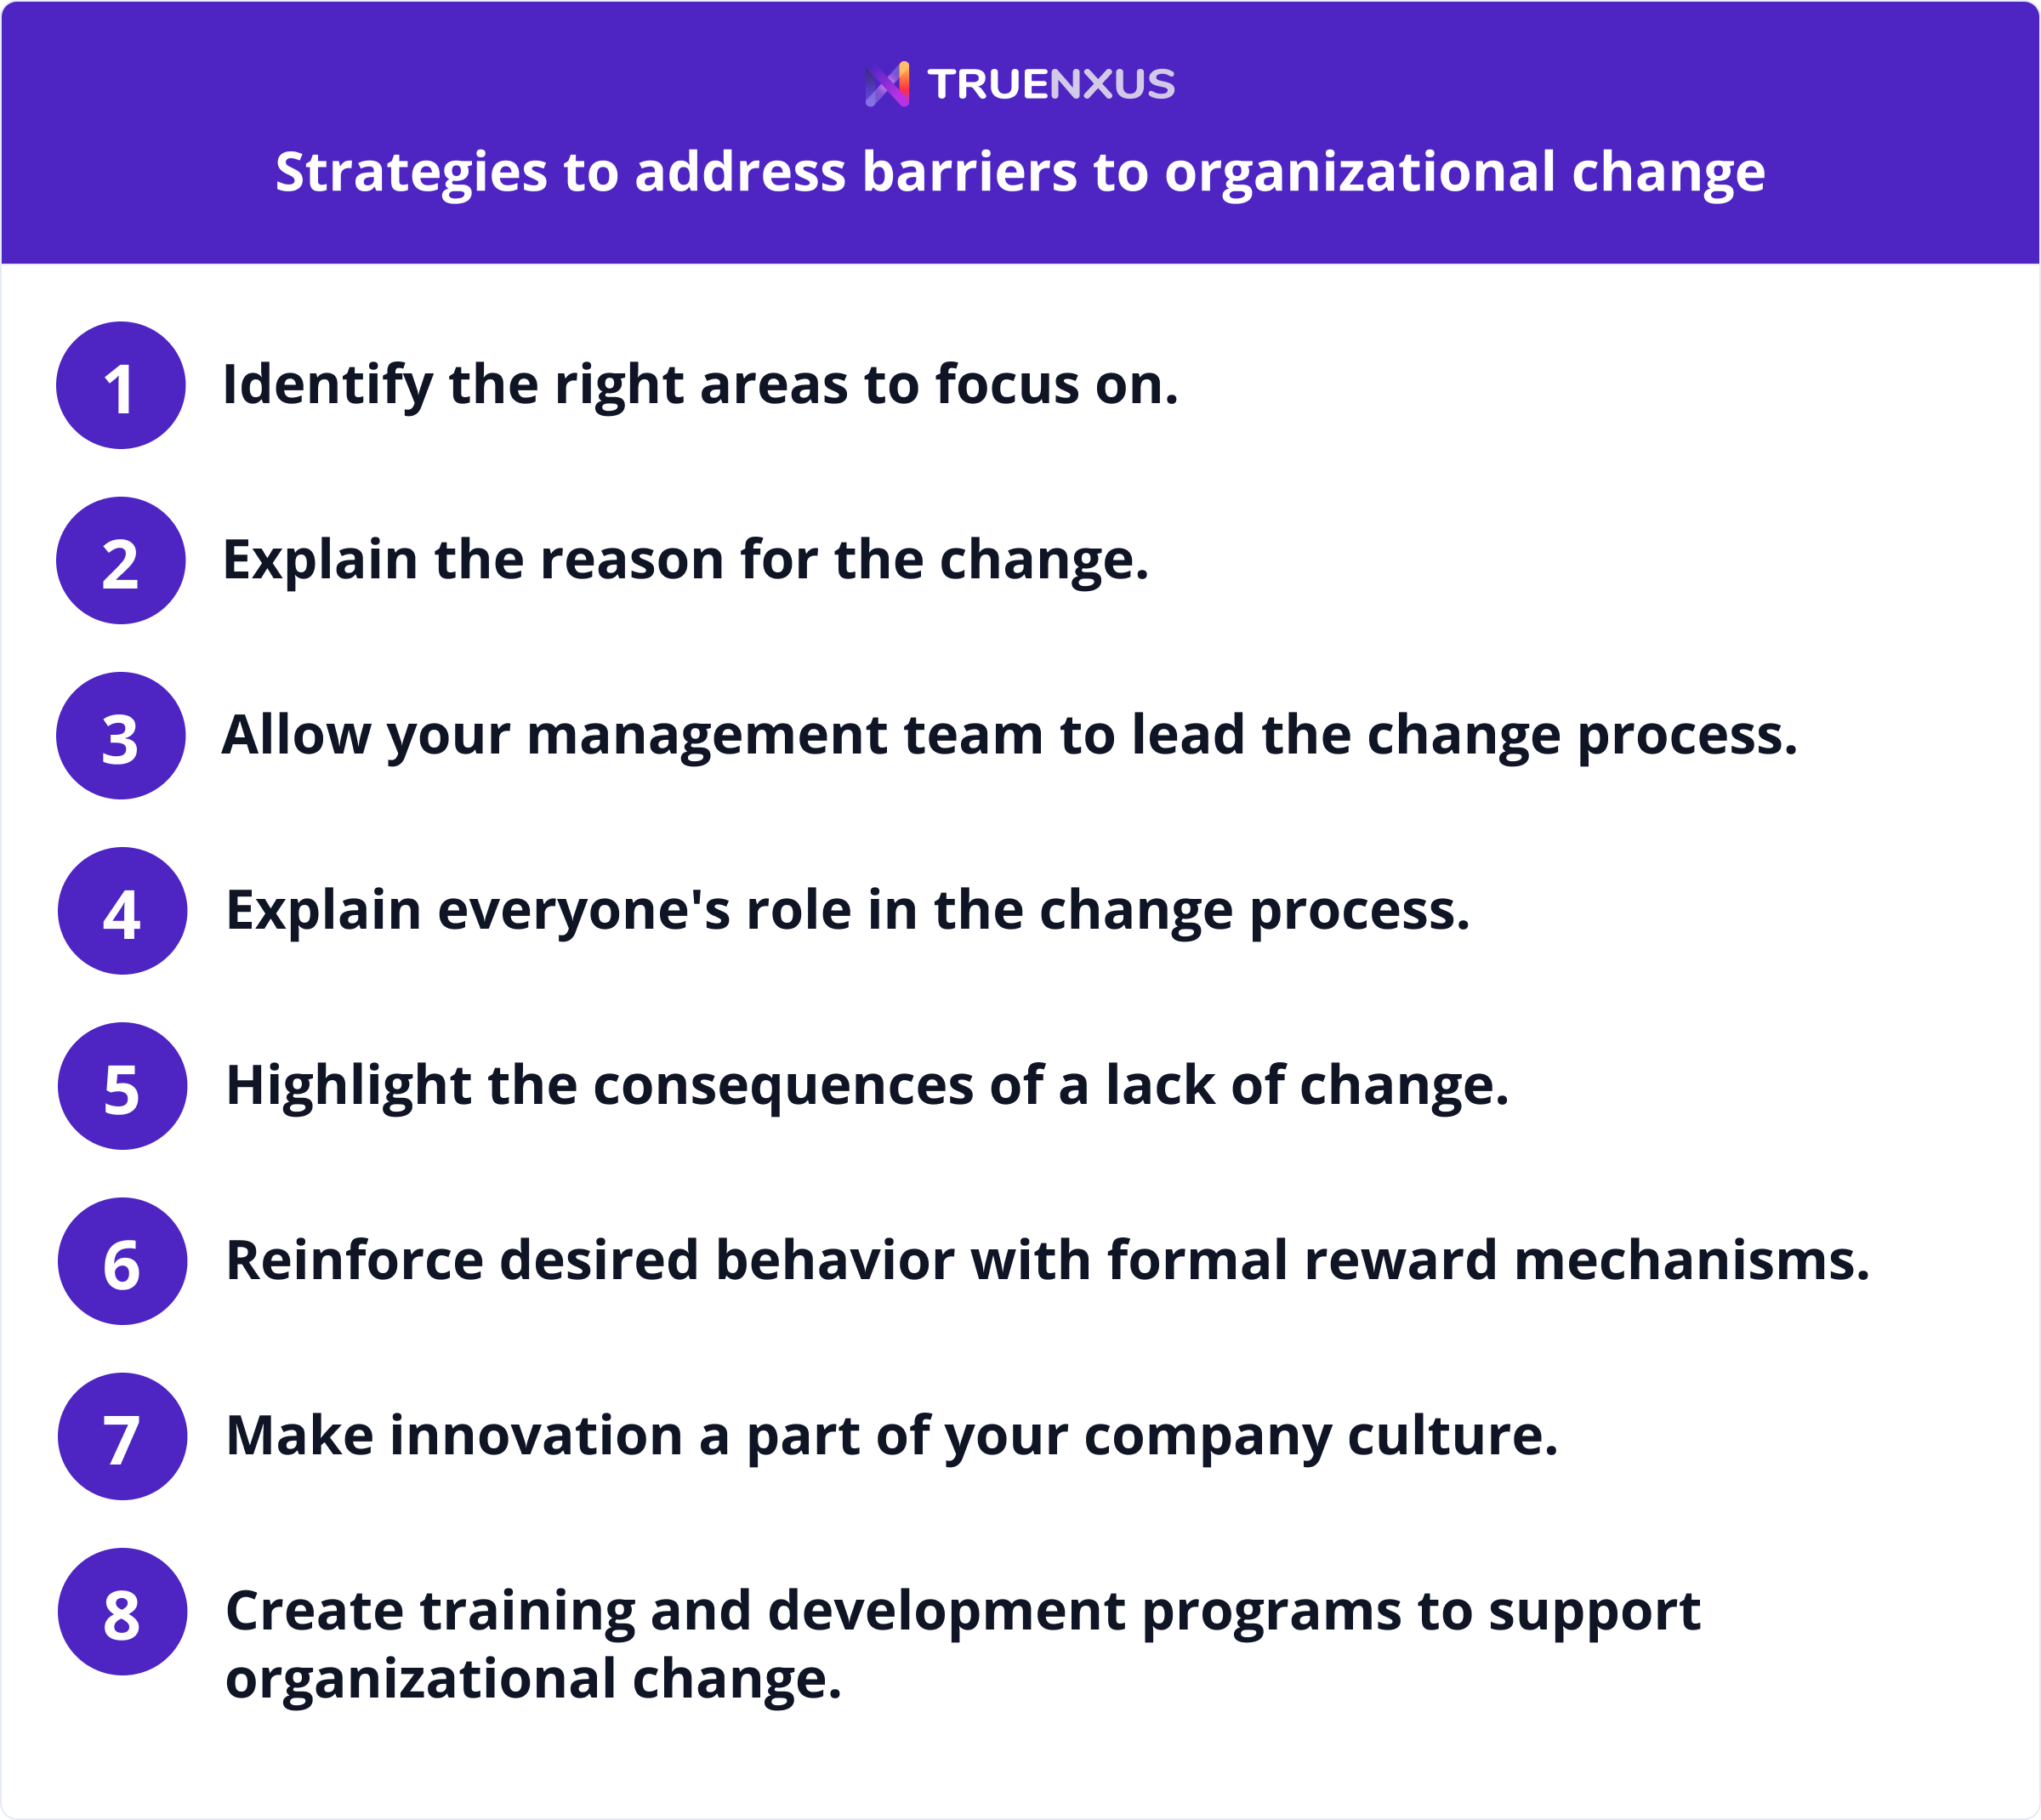 Strategies to address barriers to organizational change infographic